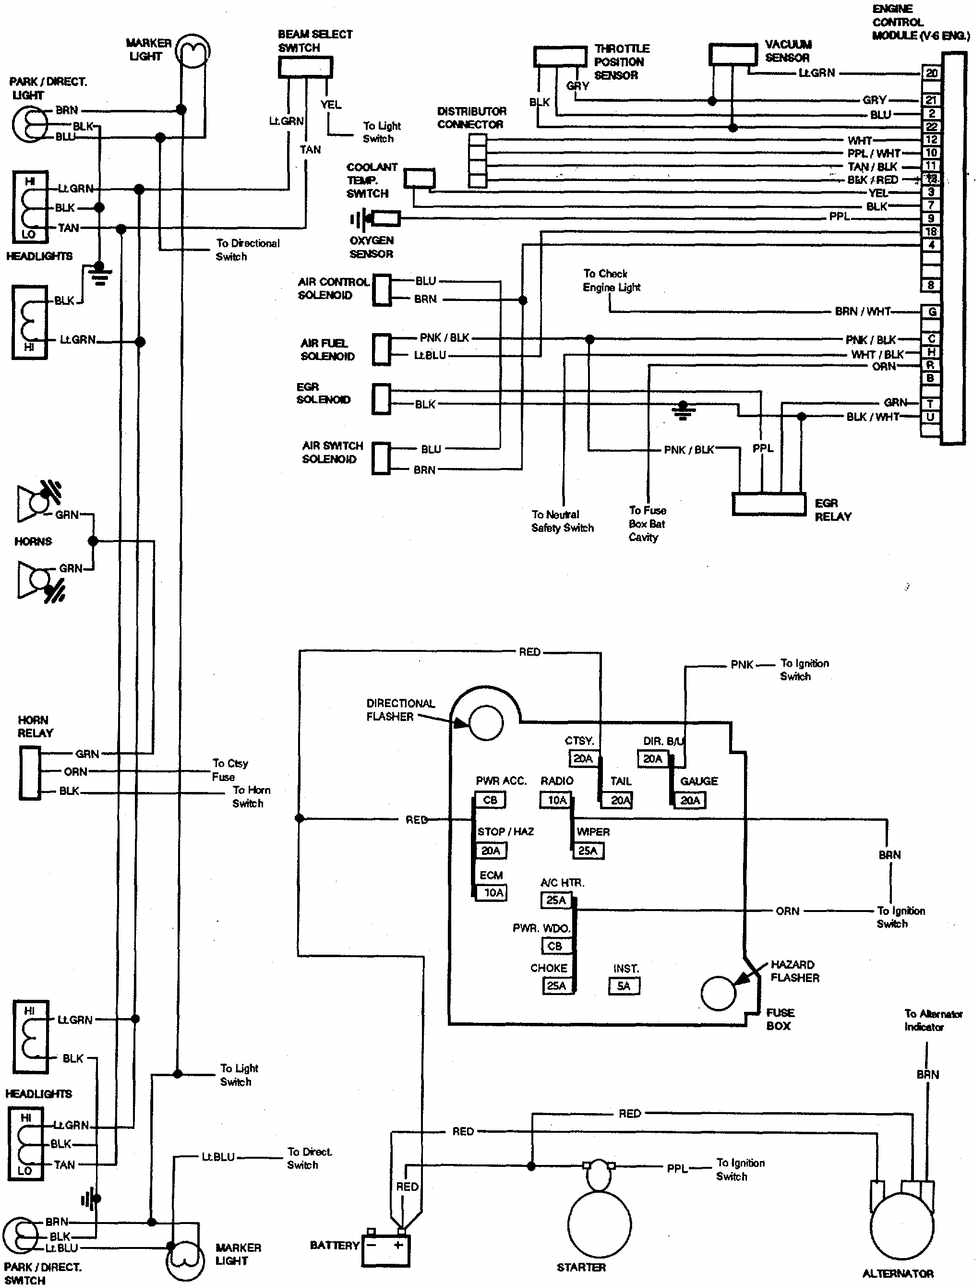 1963 Cadillac Seat Control Wiring Diagram Download Diagrams Avanti Chevrolet V8 Trucks 1981 1987 Electrical Gmc